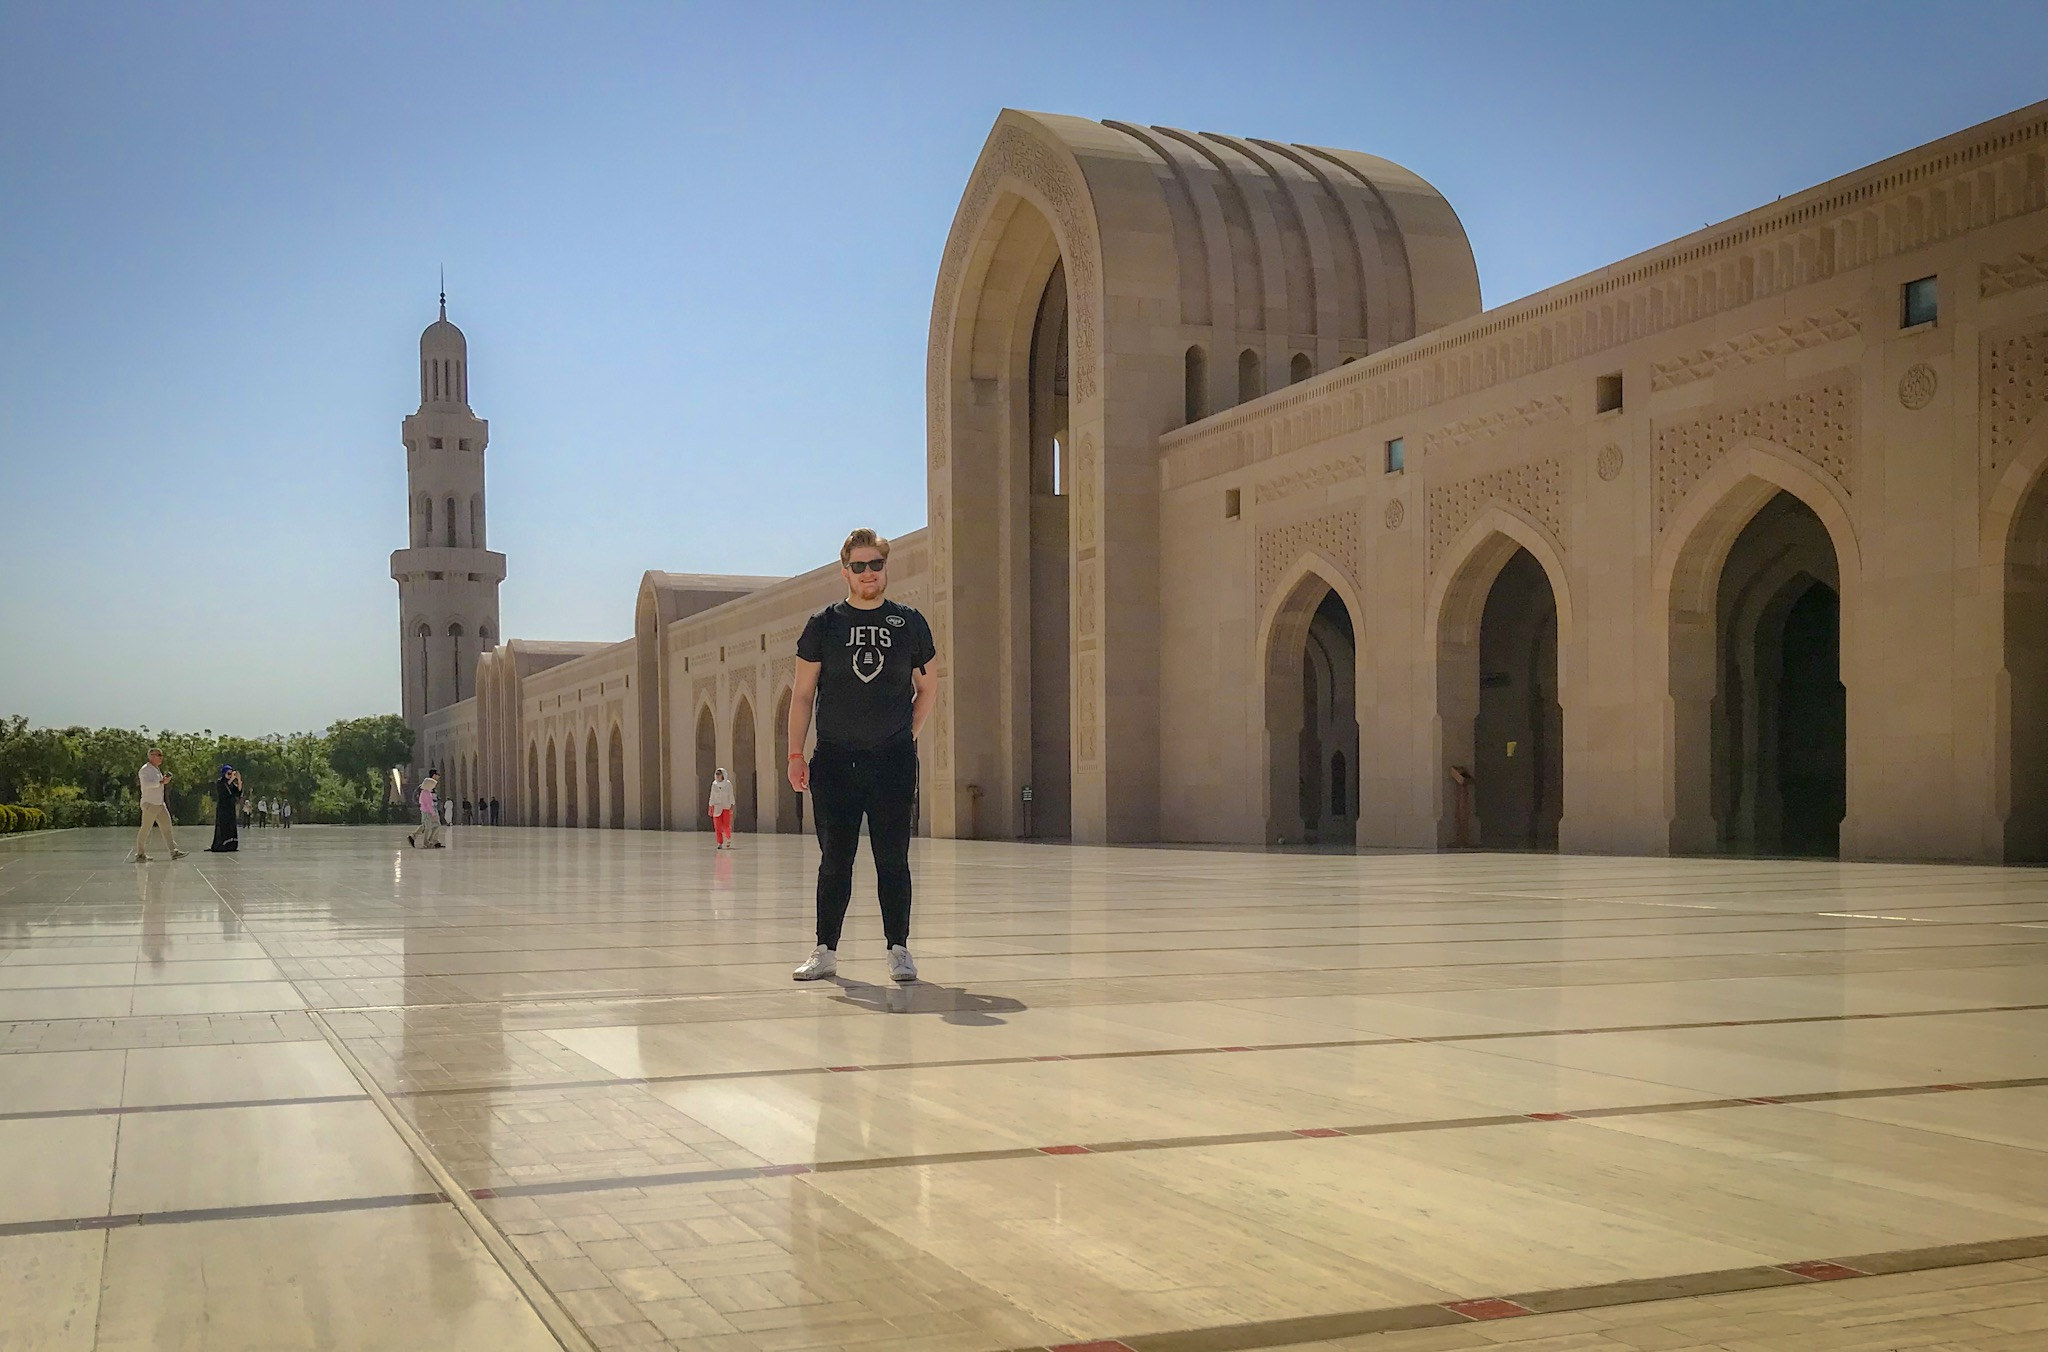 I spent part of my birthday at Sultan Qaboos Grand Mosque in Muscat, Oman.